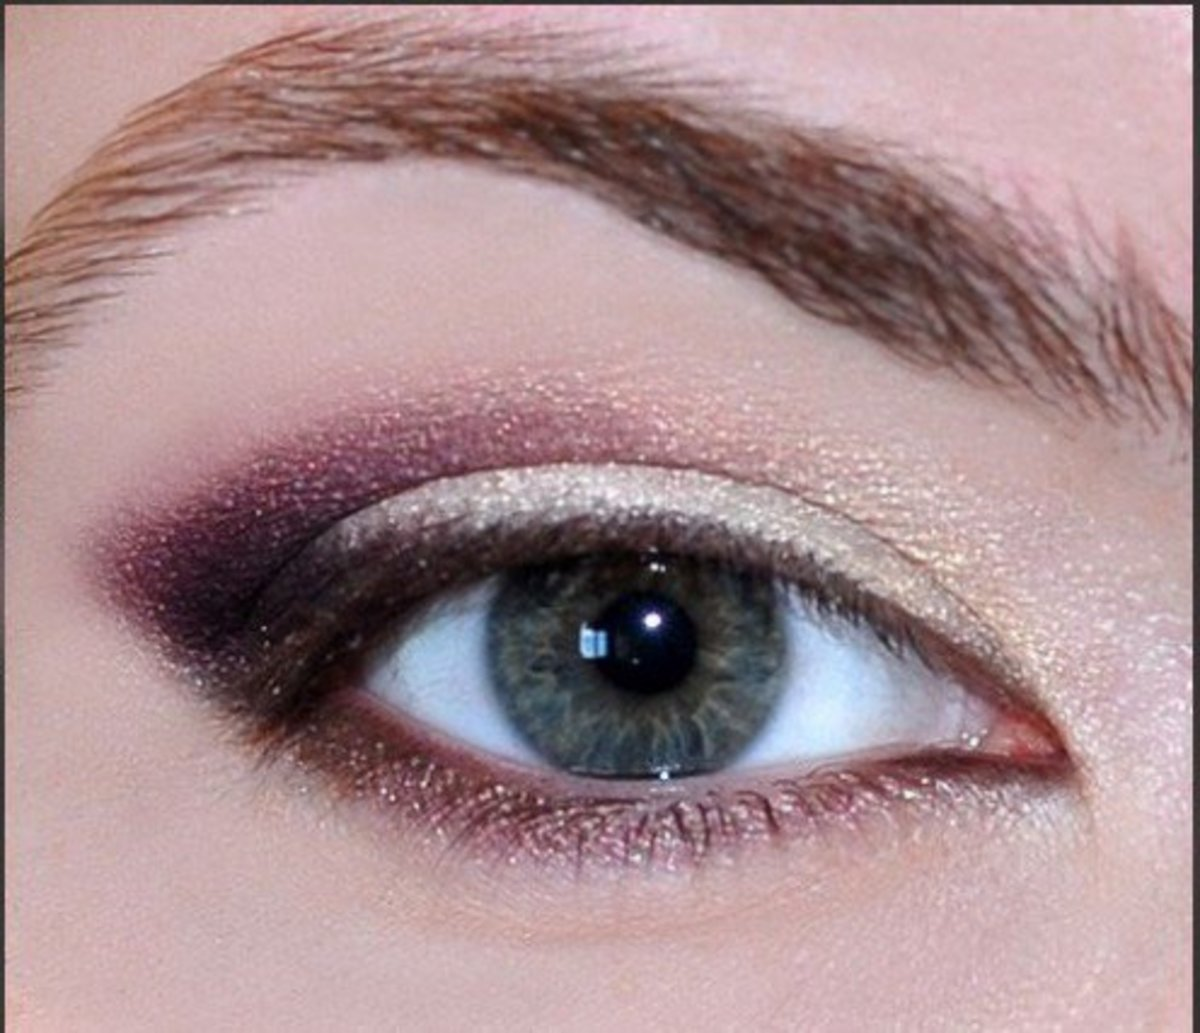 Use a sparkly white eye shadow to brighten inner corners & arch of brow bone.